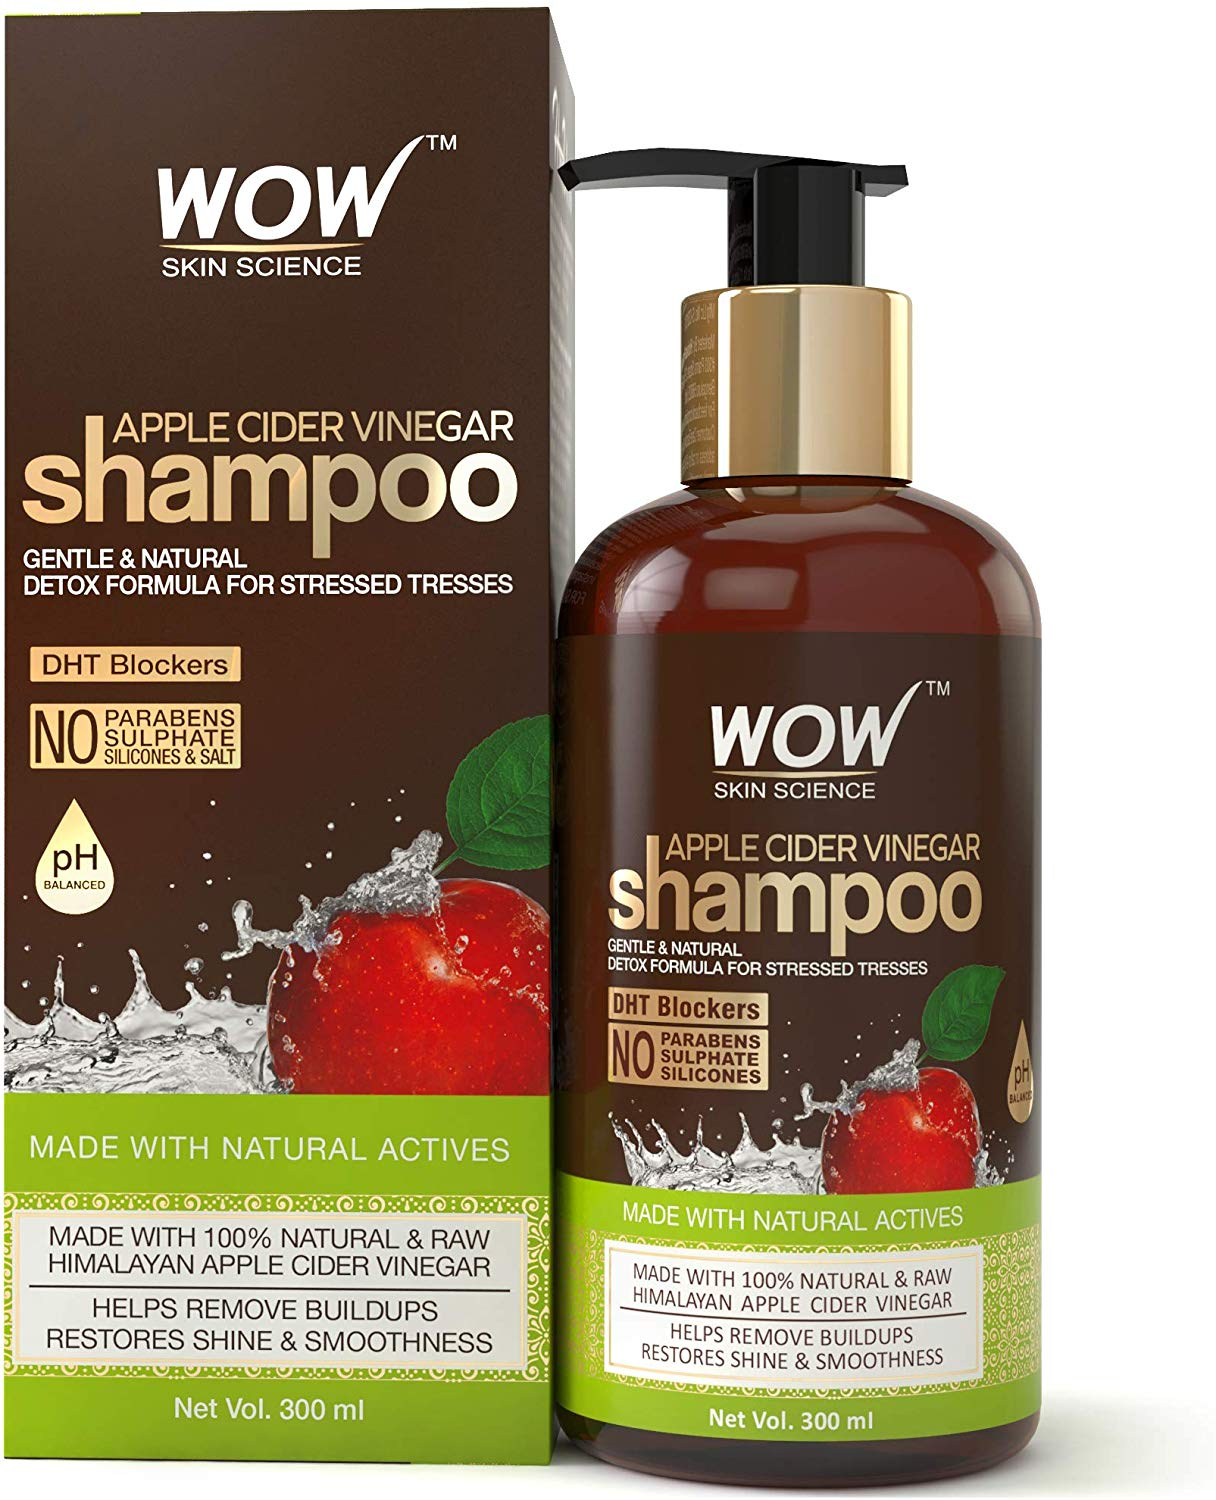 Buy [Only Rs. 319] WOW Apple Cider Vinegar No Parabens & Sulphate Shampoo 36% Off